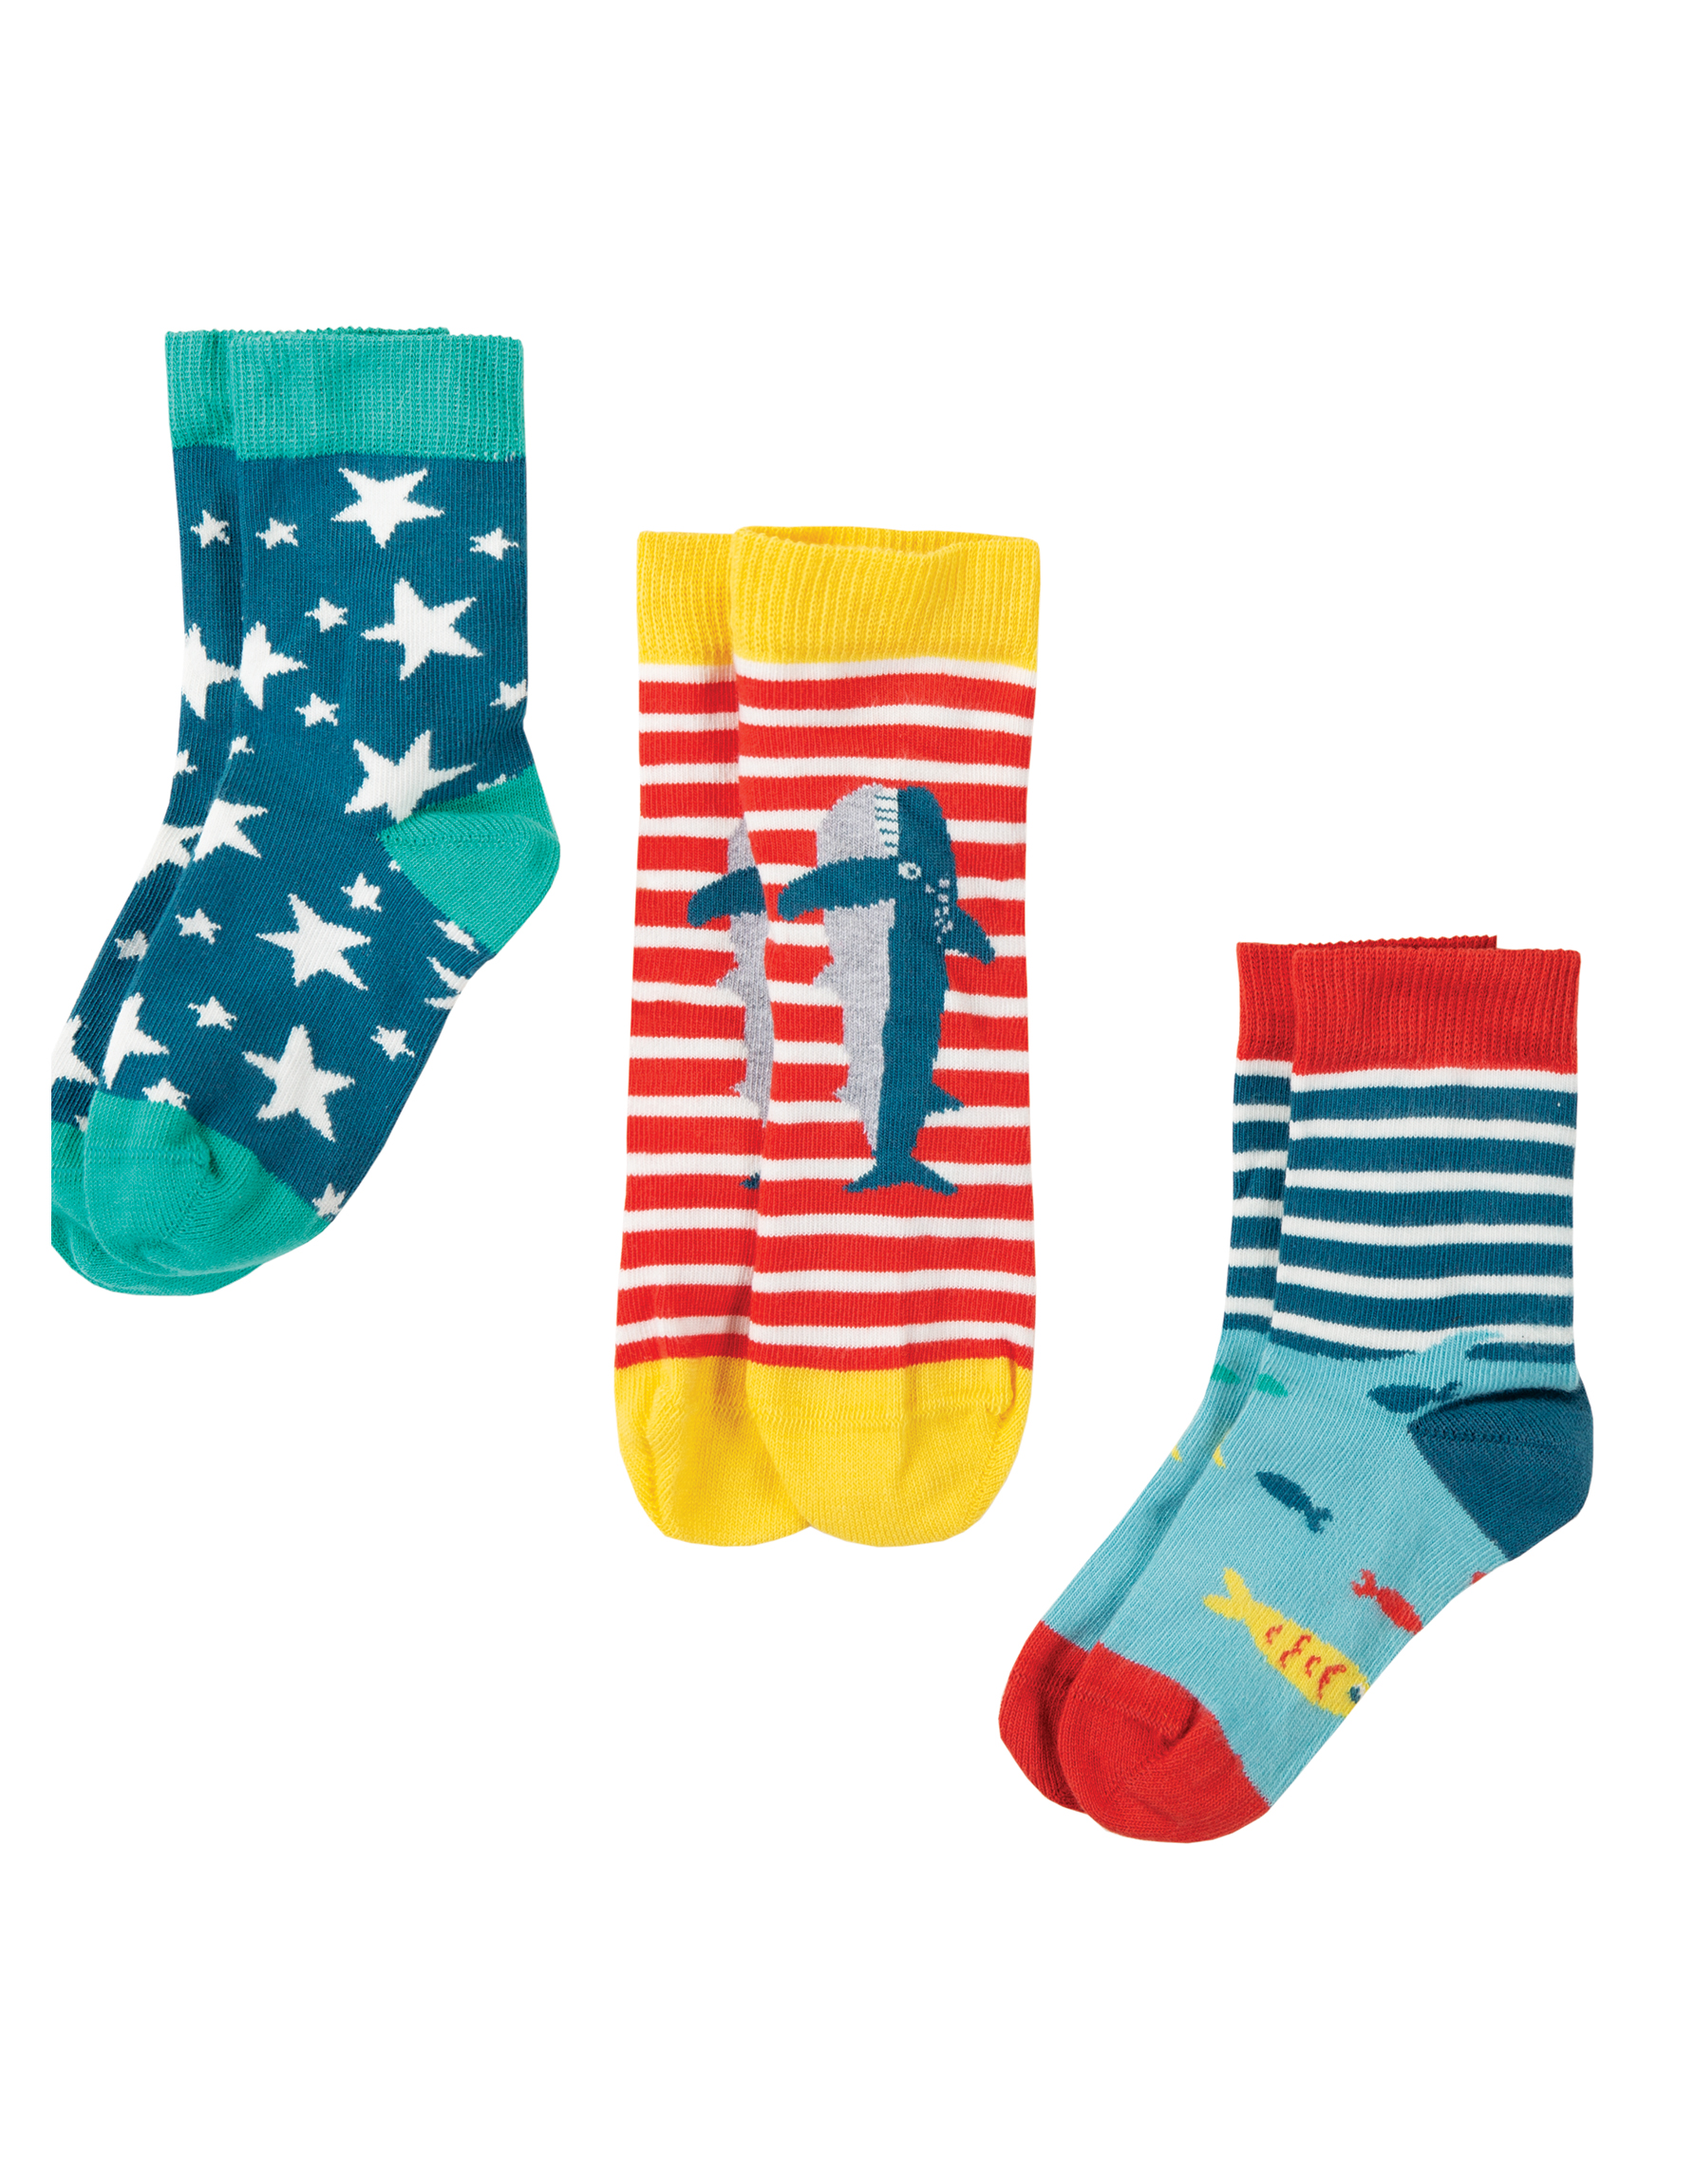 Frugi - Rock my socks 3 pack - Shark